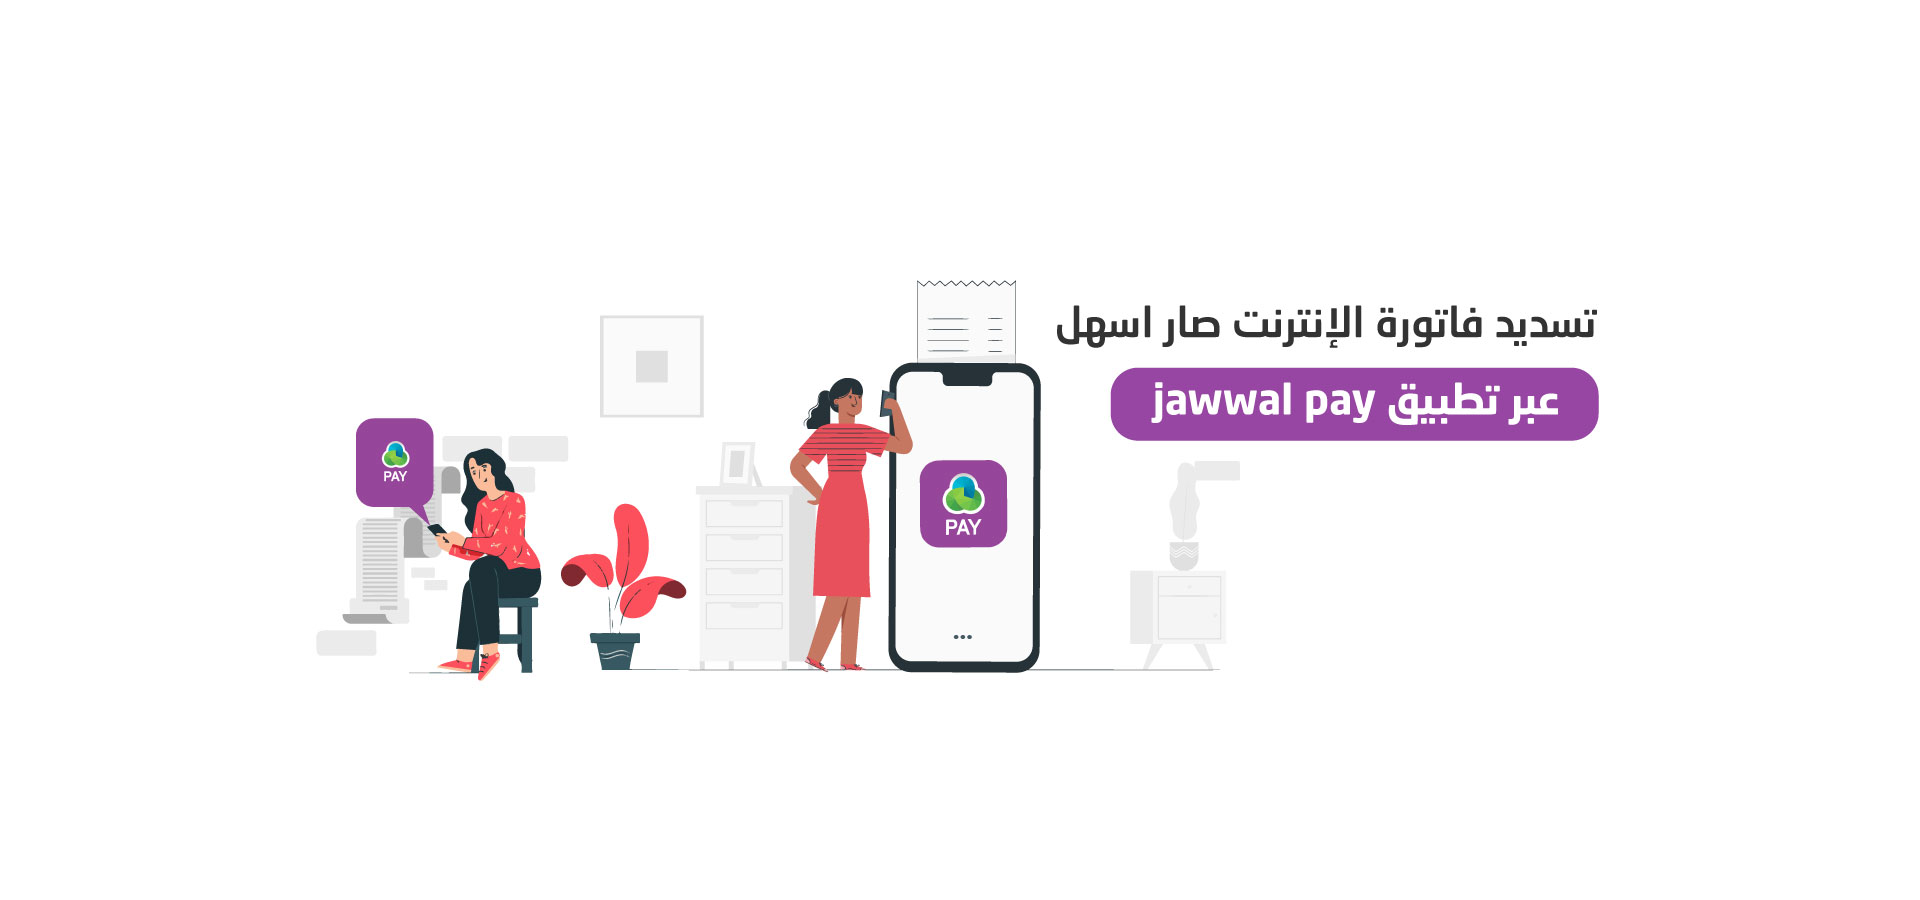 jawwal pay